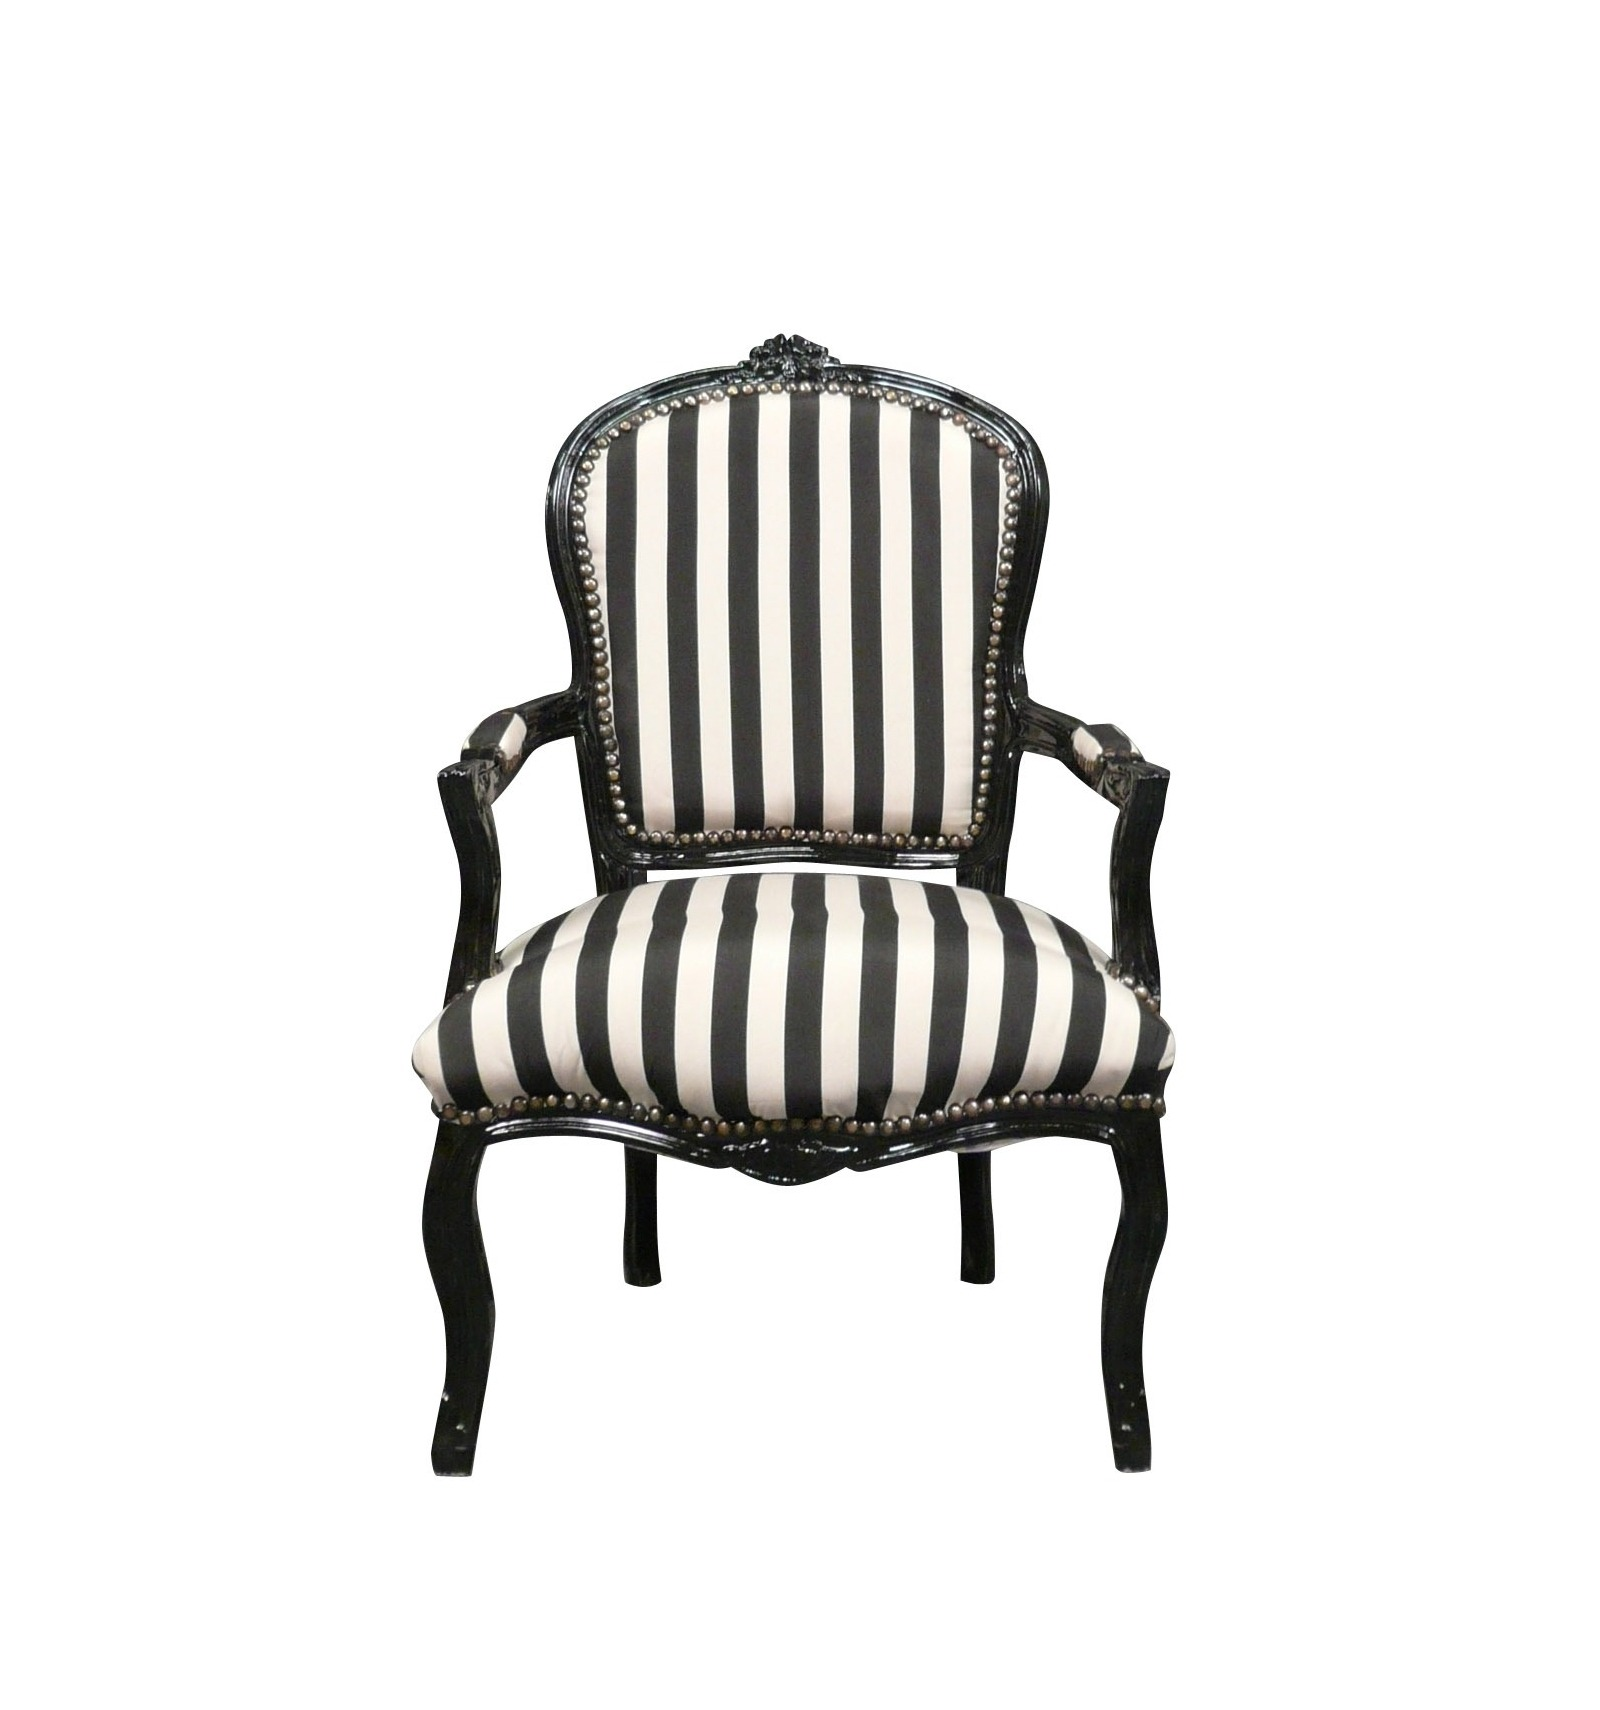 louis xv armchair with black and white stripes. Black Bedroom Furniture Sets. Home Design Ideas